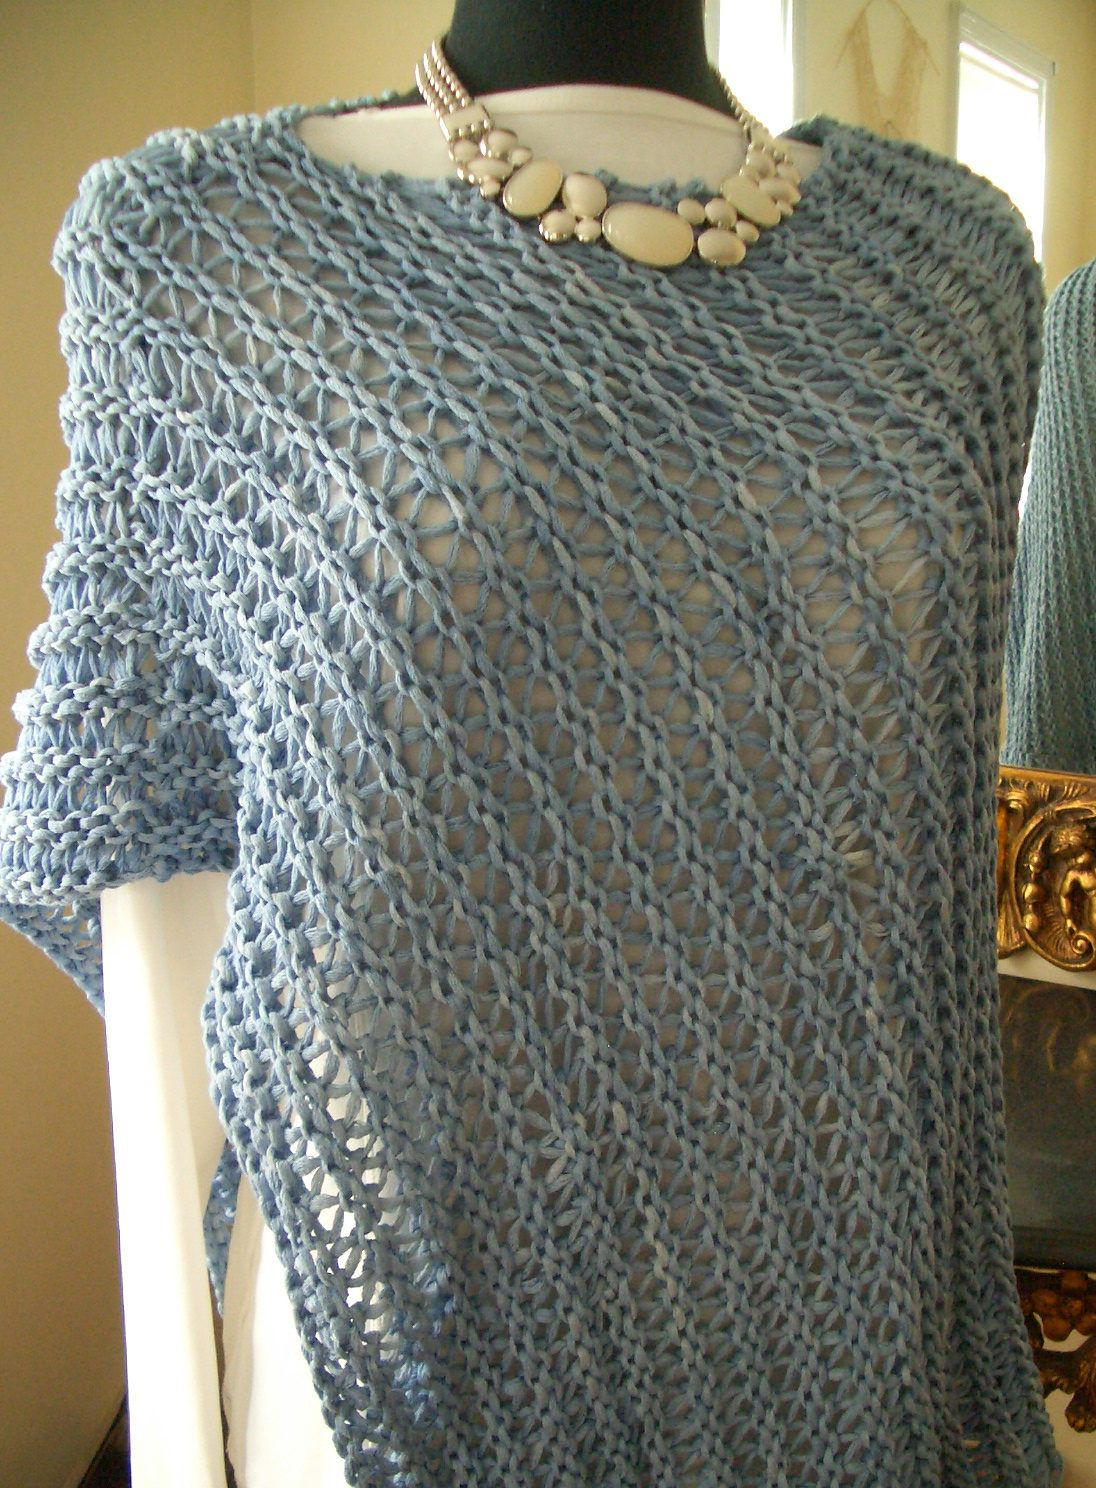 Knitting Poncho Easy : Free knitting pattern for easy row repeat ridged wrap